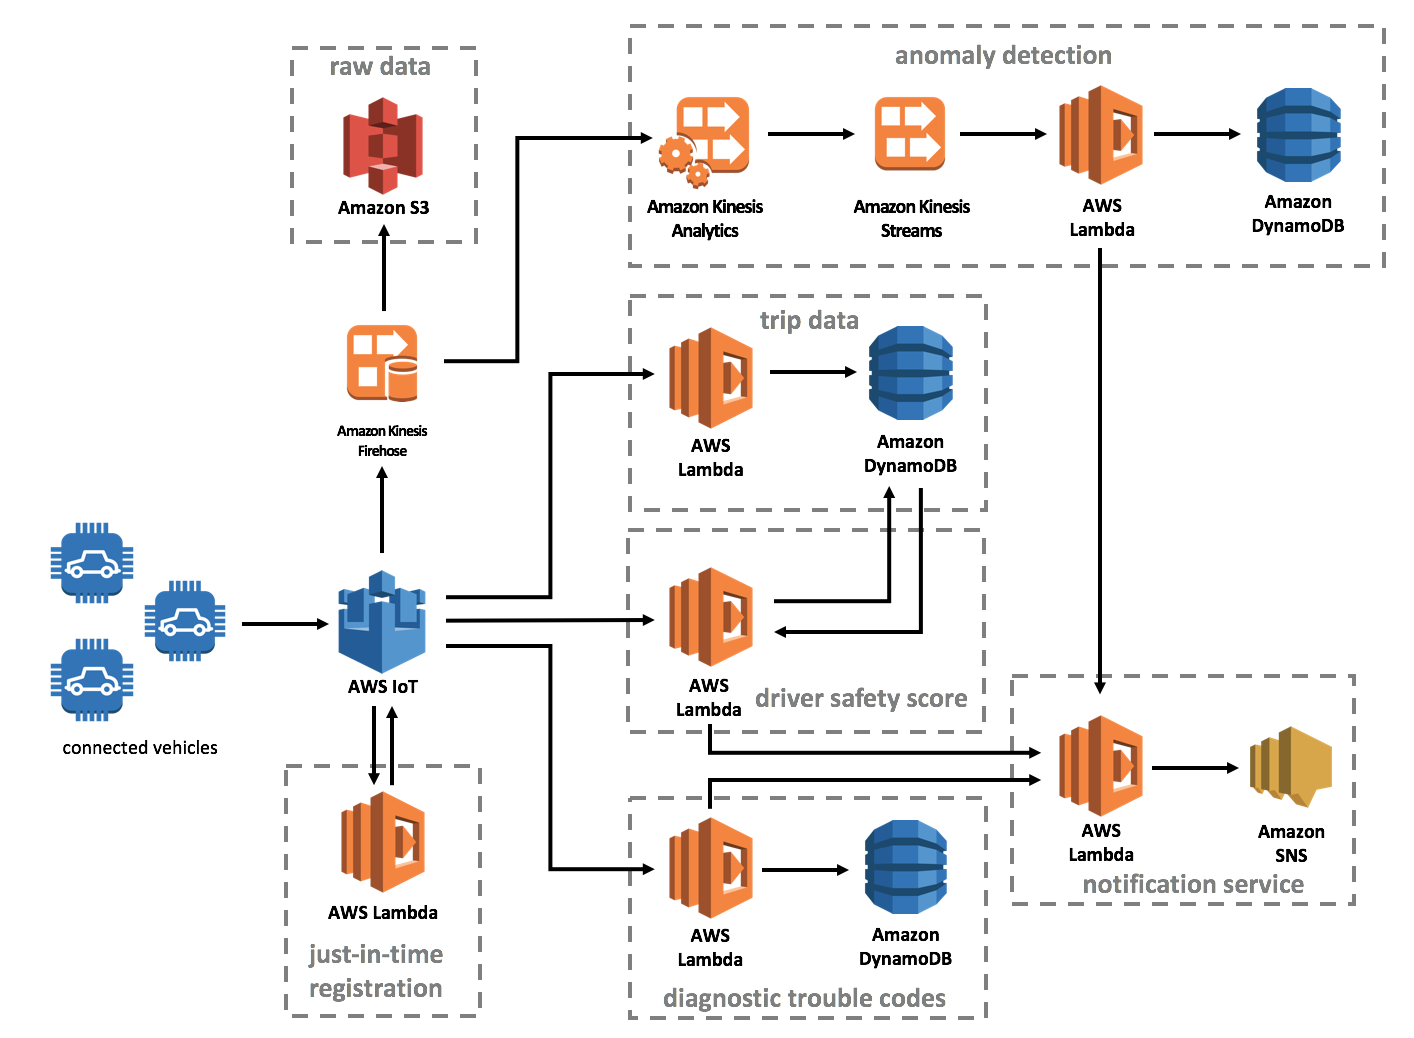 AWS Connected Vehicle Architecture